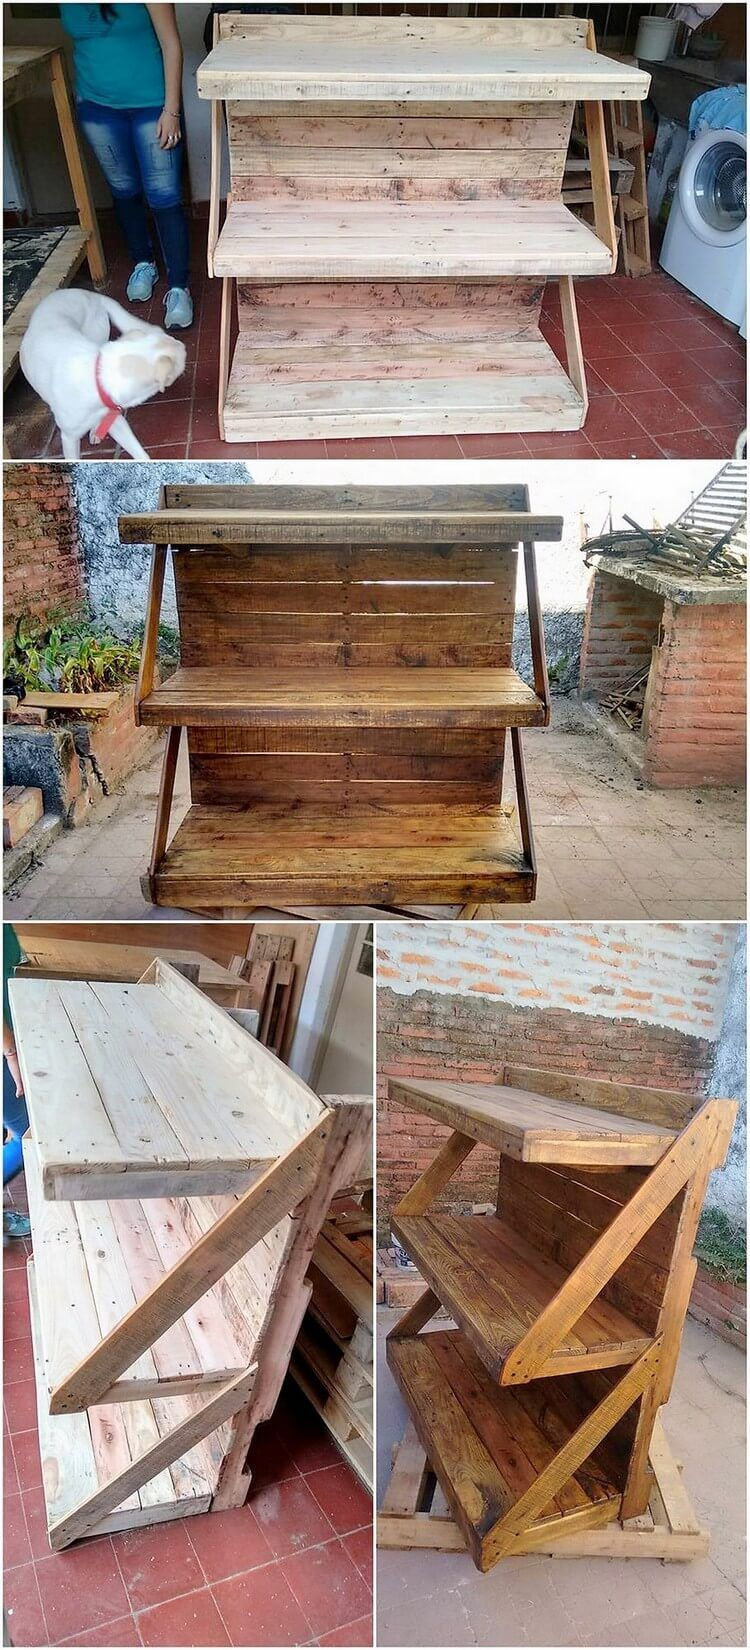 shipping pallet furniture ideas. Mind Blowing Creations With Recycled Shipping Pallets Pallet Furniture Ideas